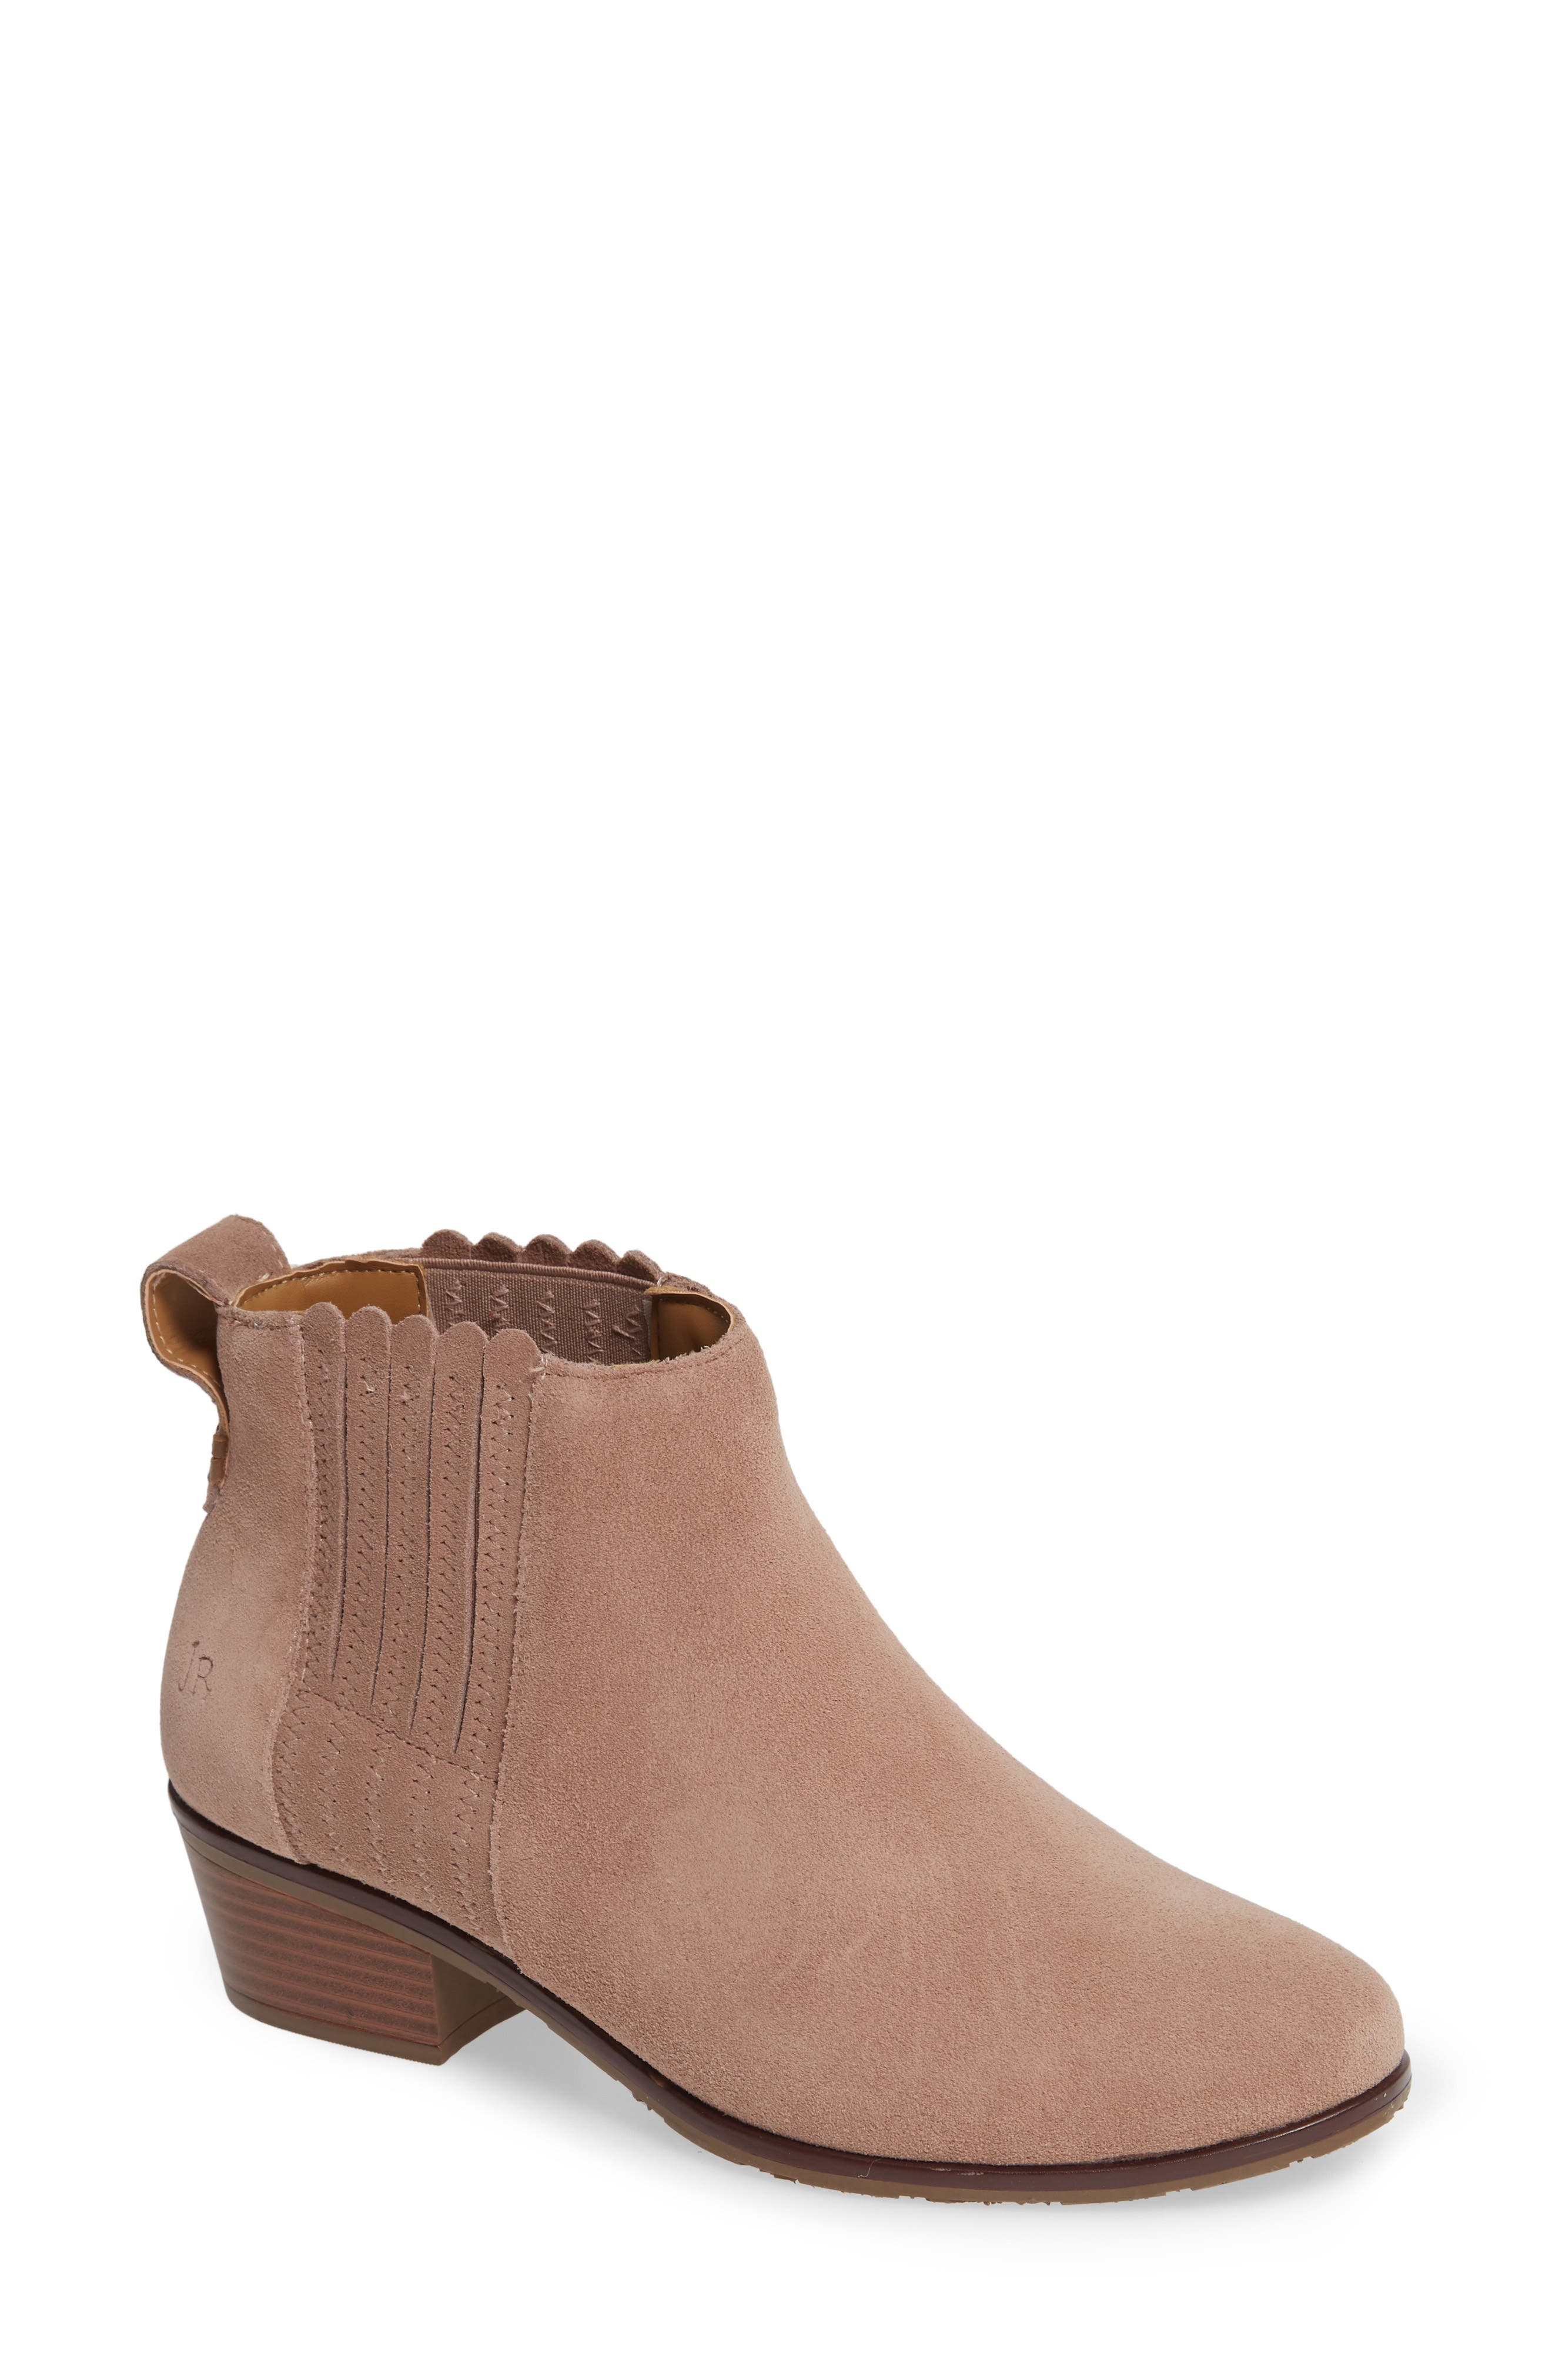 Liddy Waterproof Chelsea Bootie,                             Main thumbnail 1, color,                             STONE SUEDE